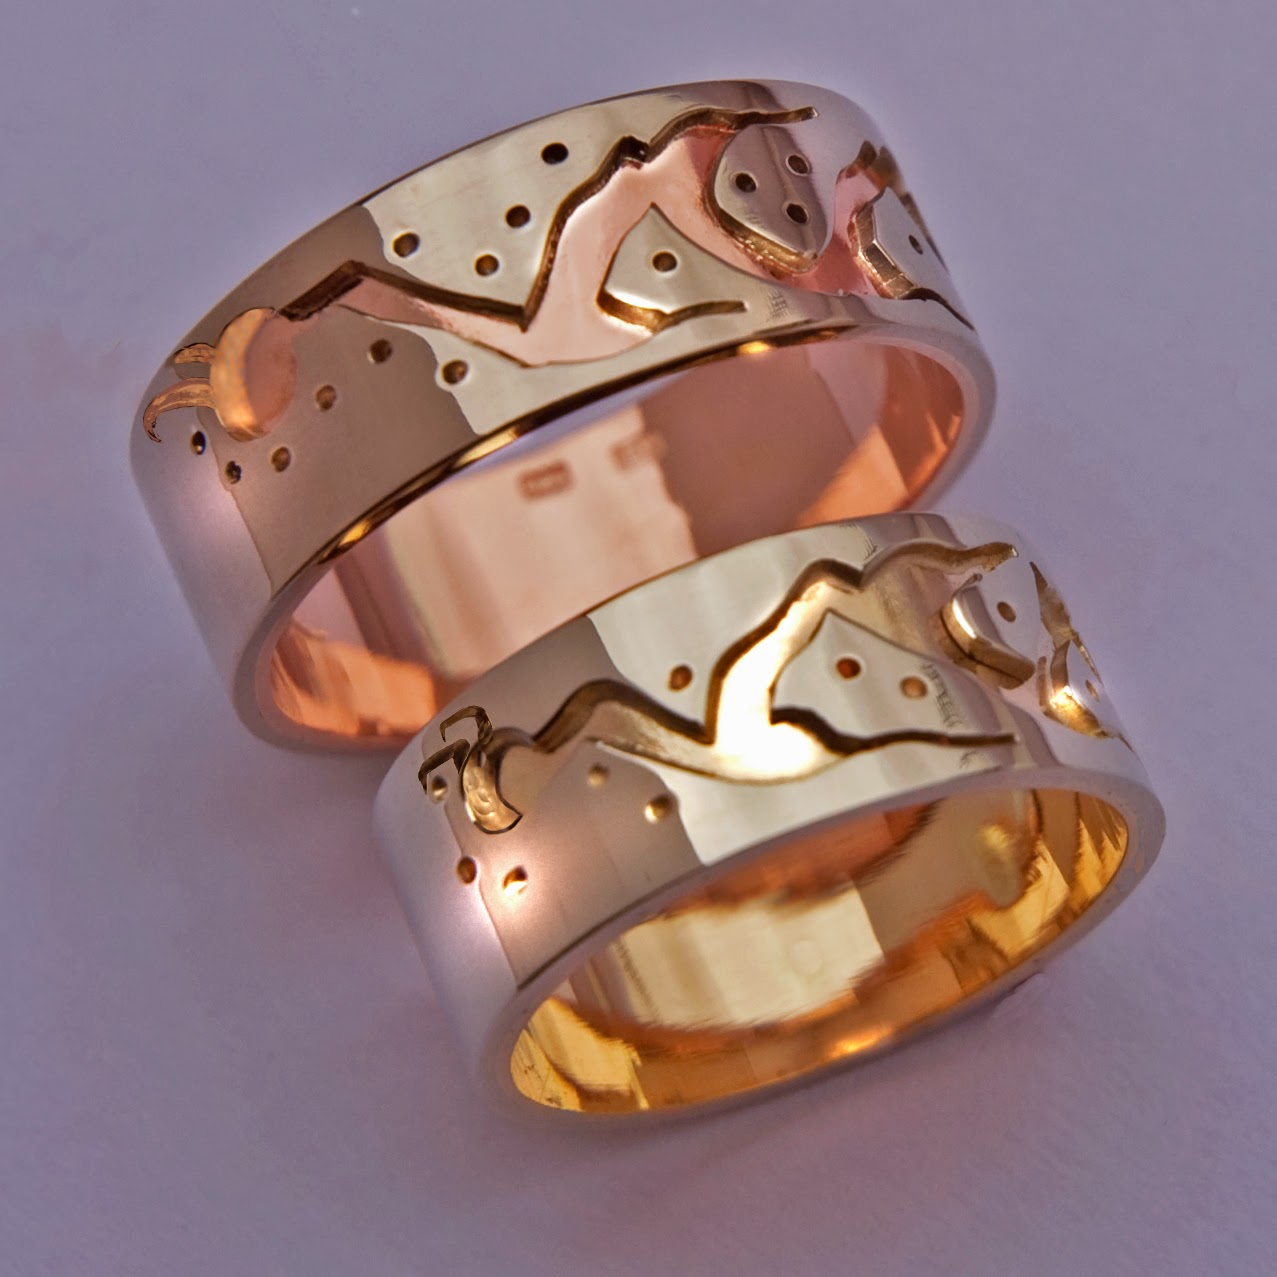 Noojimoowin Miinawaa Nibwaakaawin Fisher Star design wedding bands.